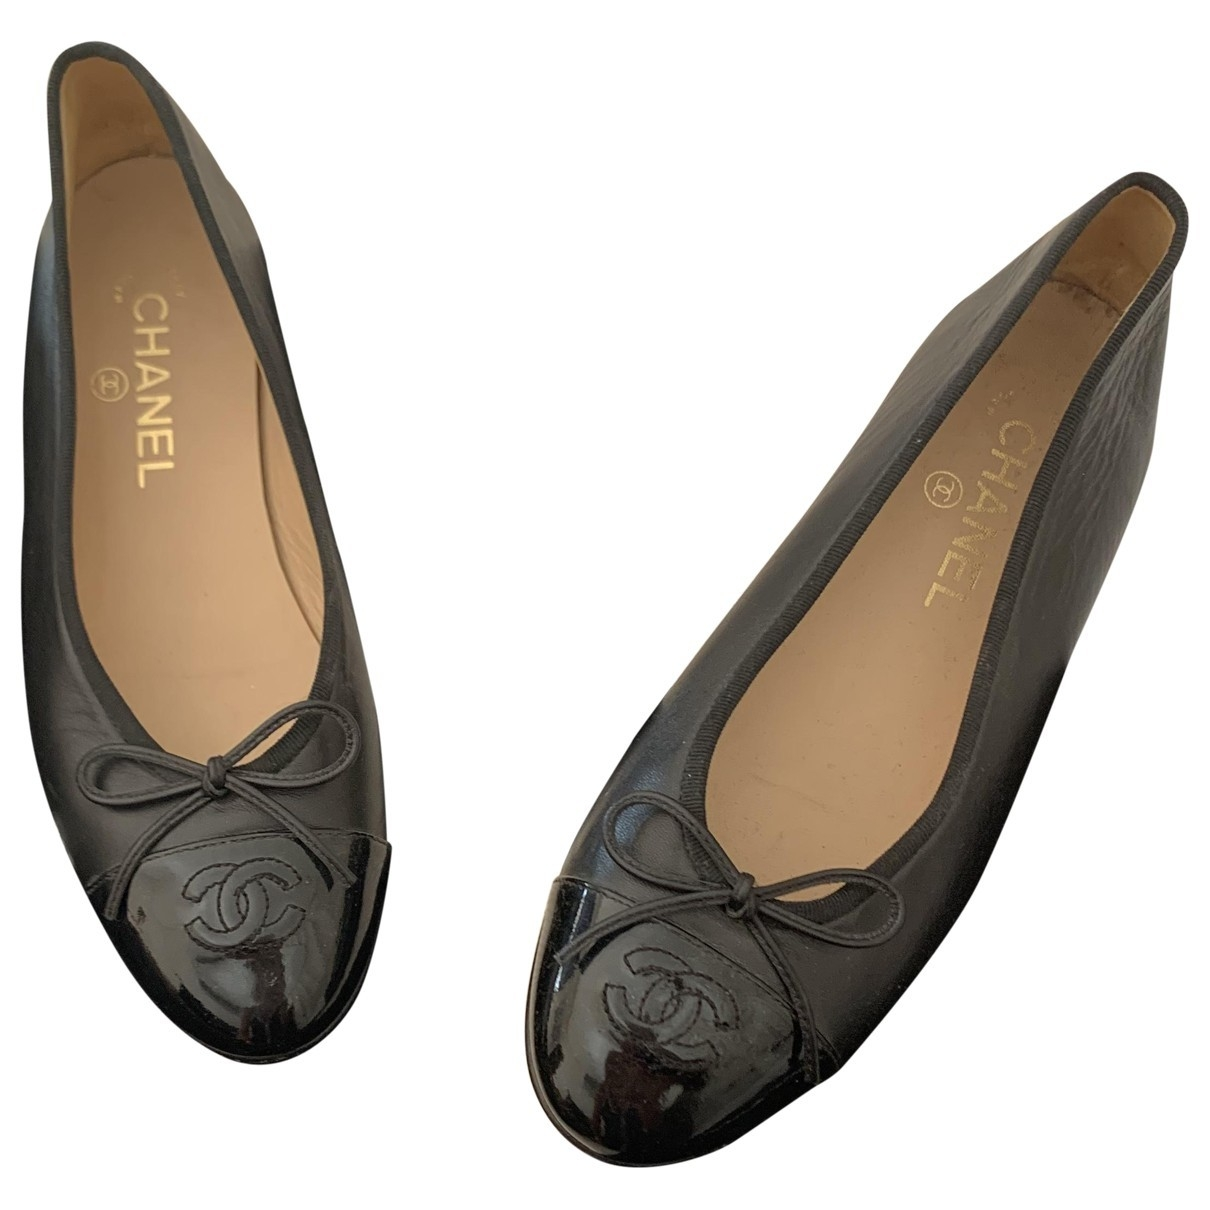 Chanel \N Black Leather Ballet flats for Women 38.5 EU